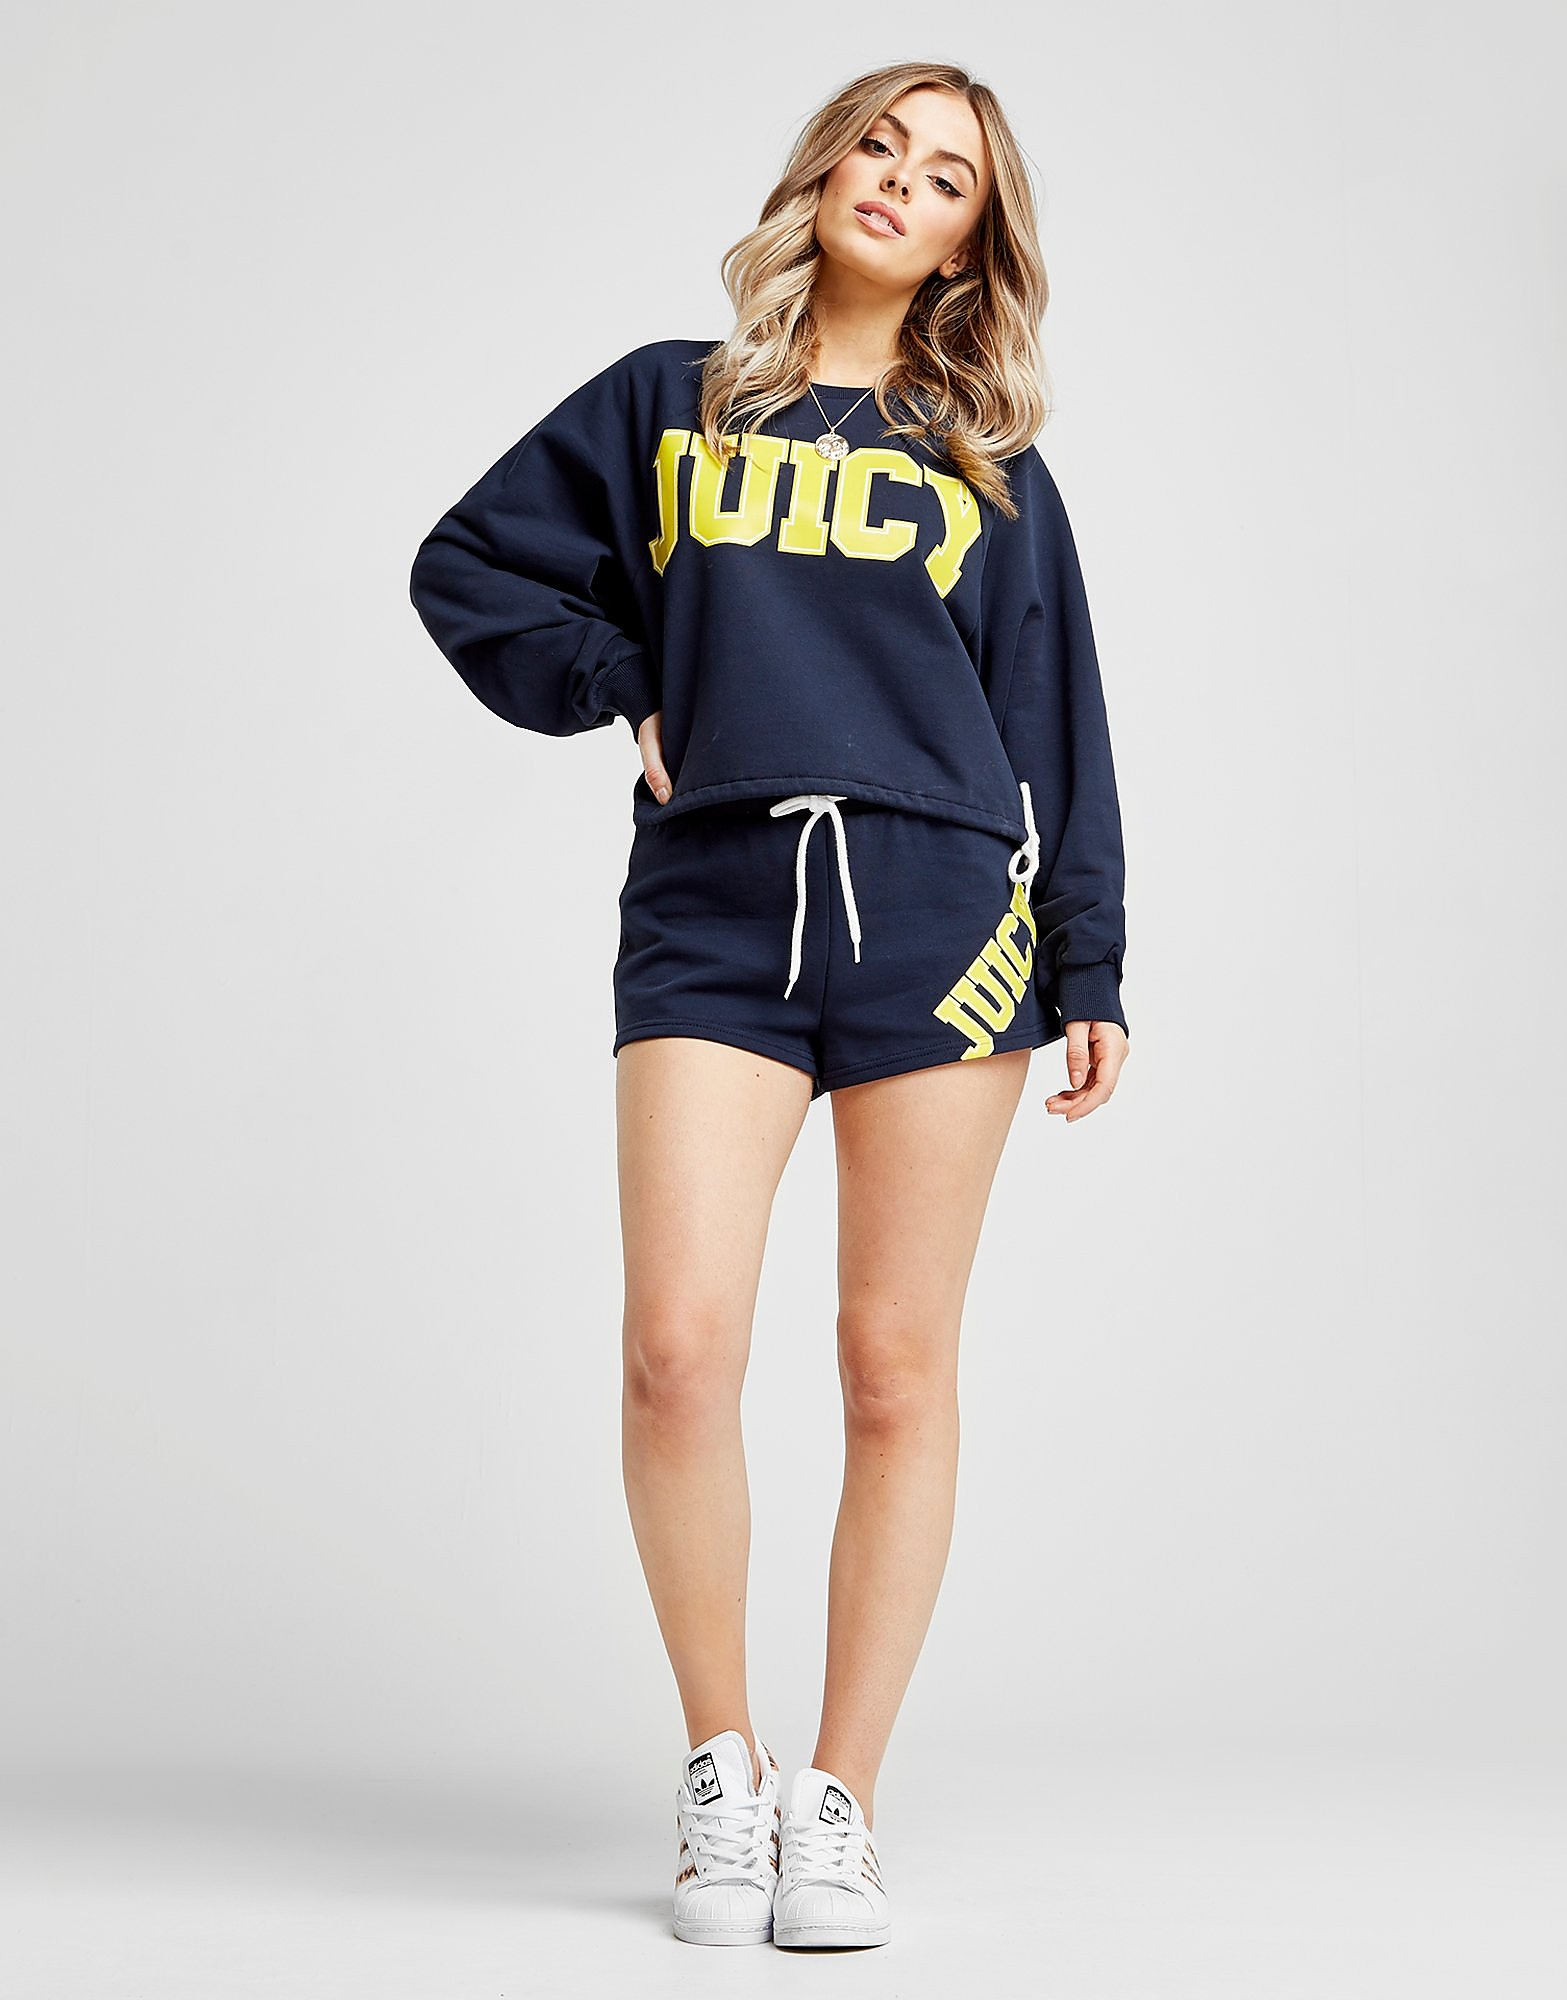 Juicy by Juicy Couture Logo Shorts